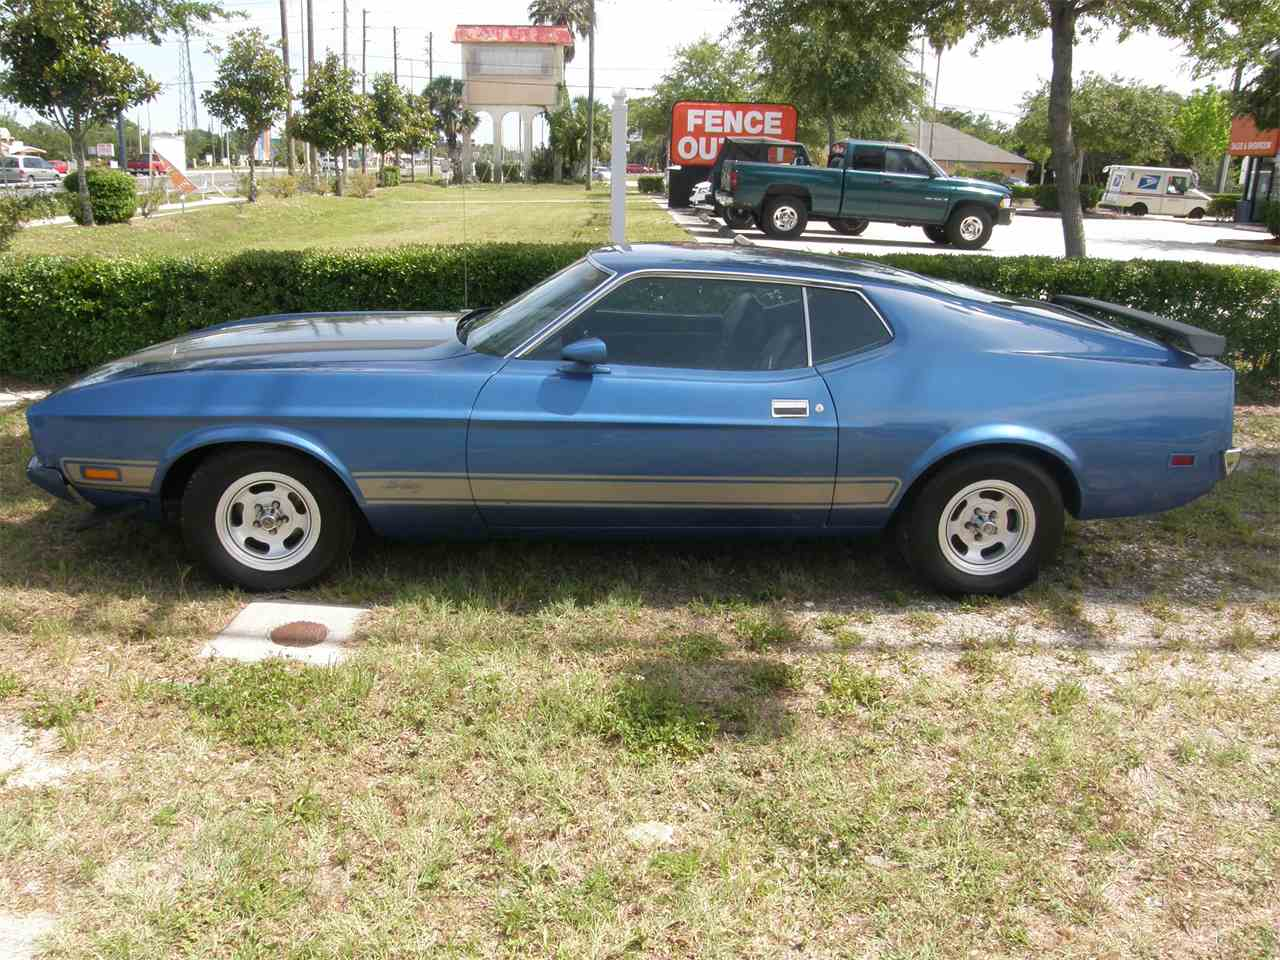 1973 Ford Mustang Mach 1 for Sale on ClassicCarscom  14 Available